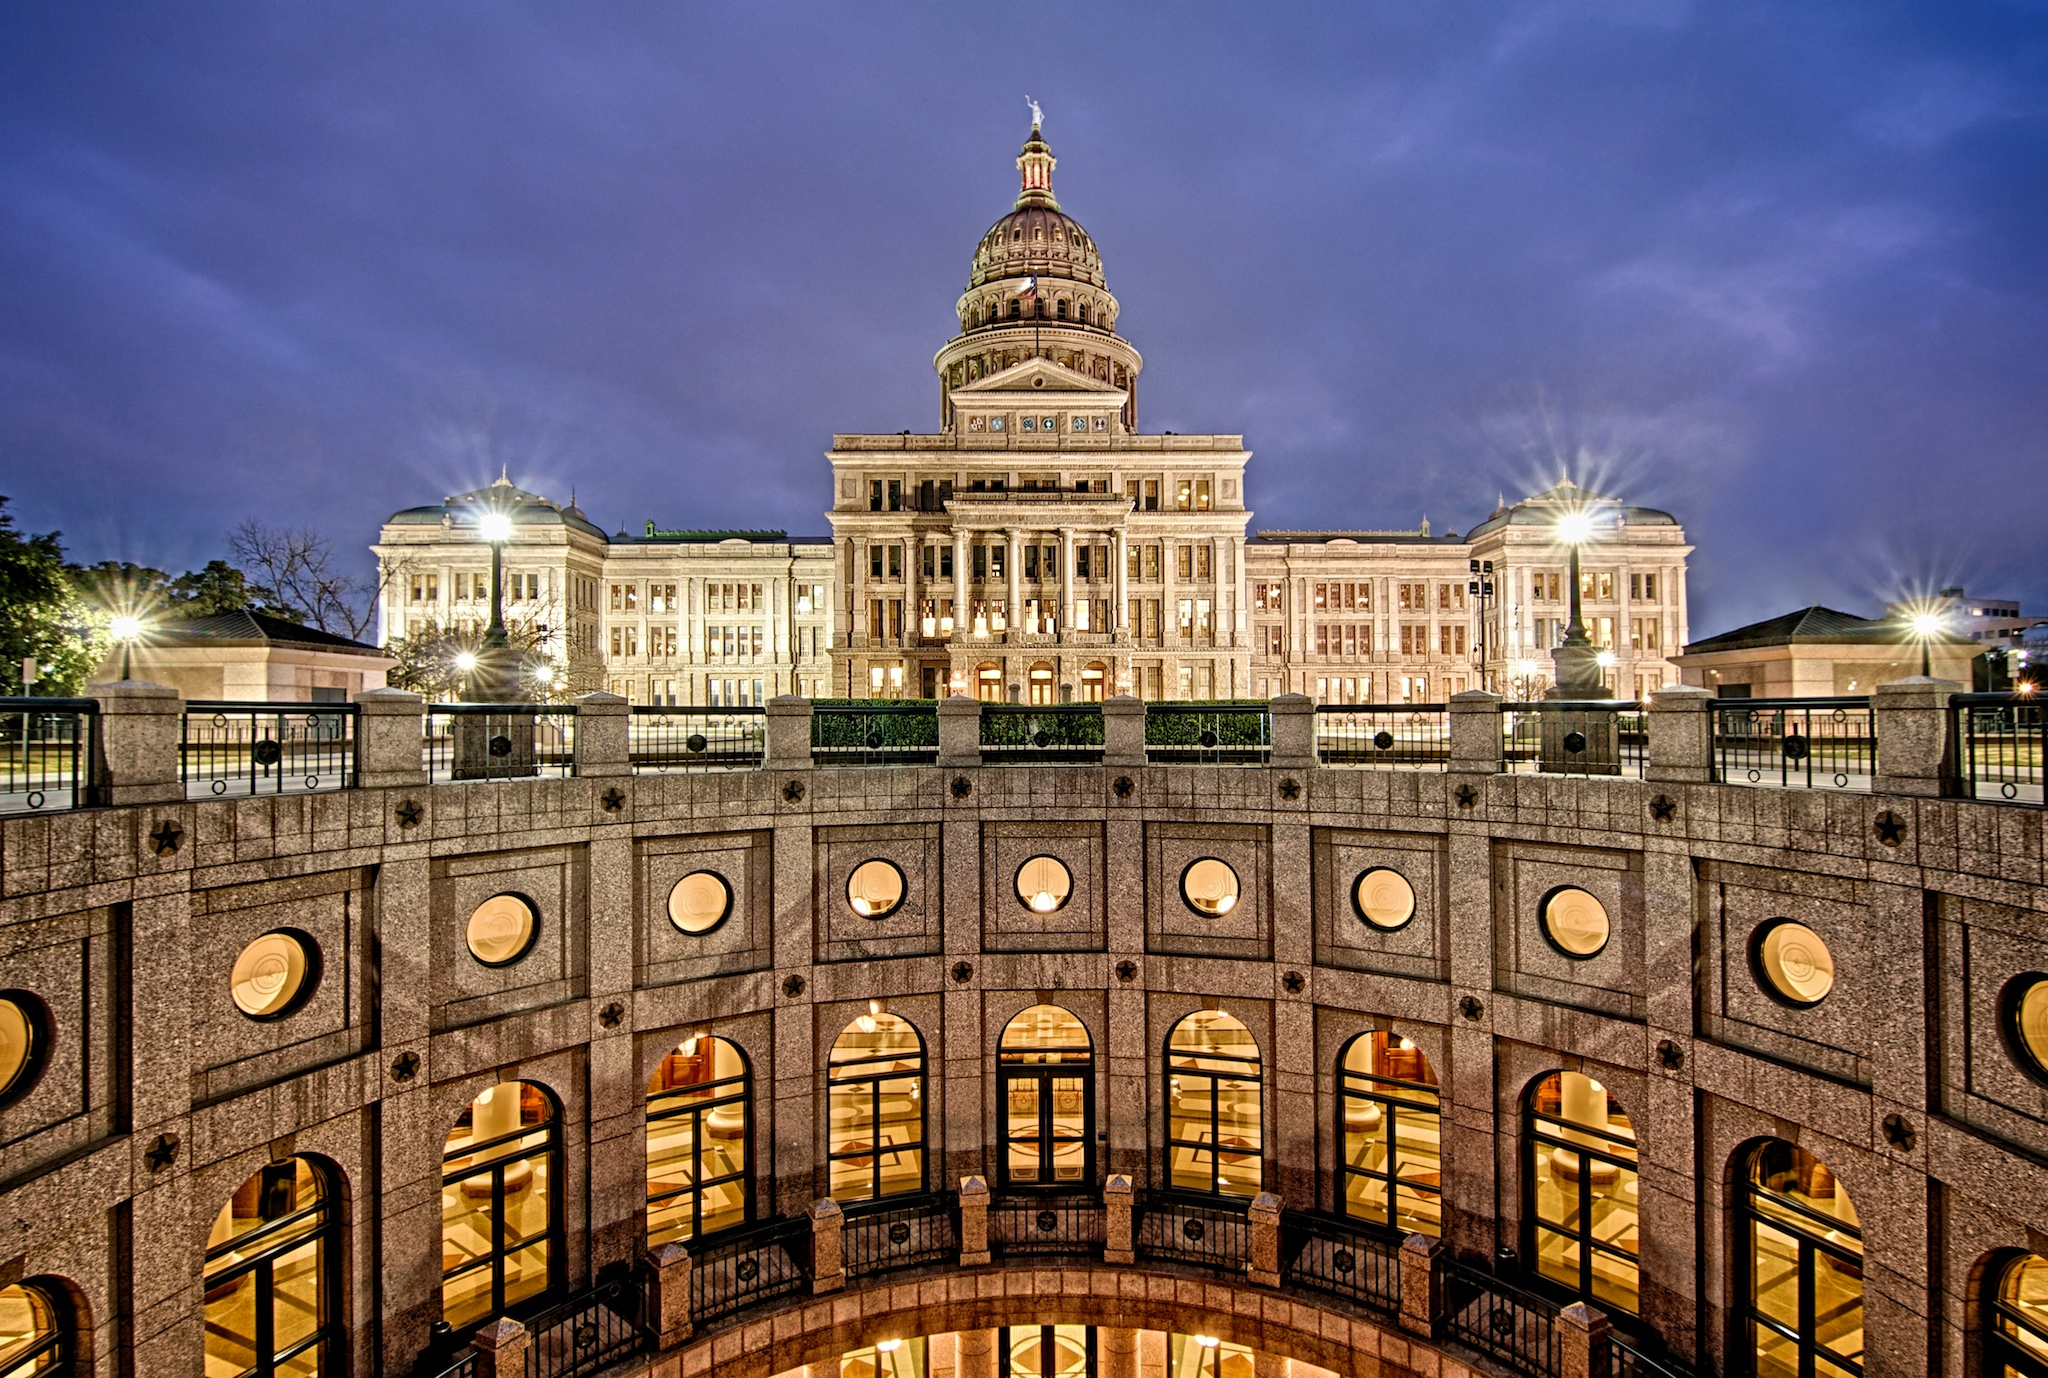 The Texas State Capital, Austin, Texas